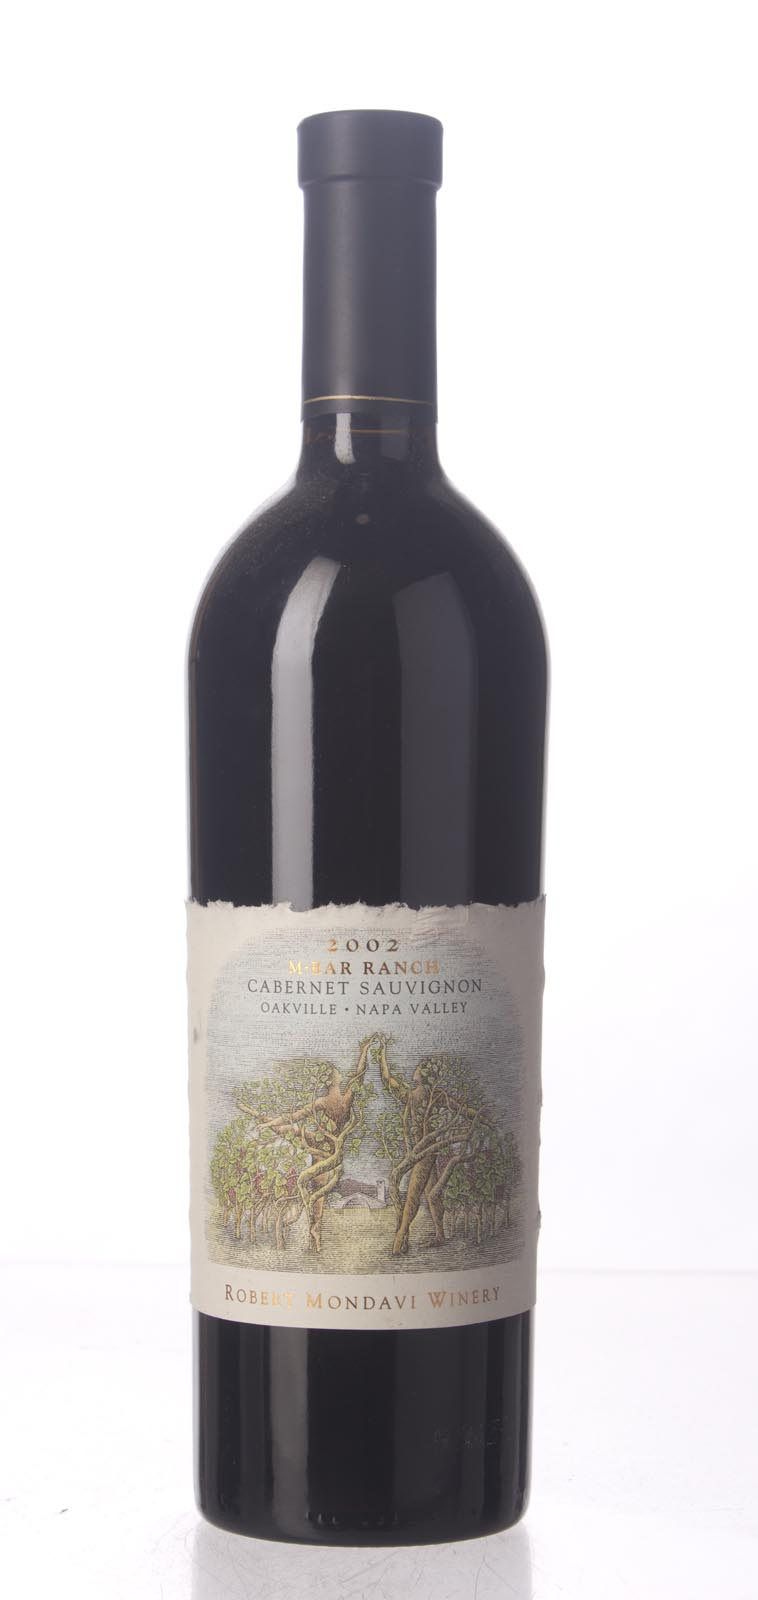 Robert Mondavi Cabernet Sauvignon M Bar 2002, 750mL (WA93) from The BPW - Merchants of rare and fine wines.